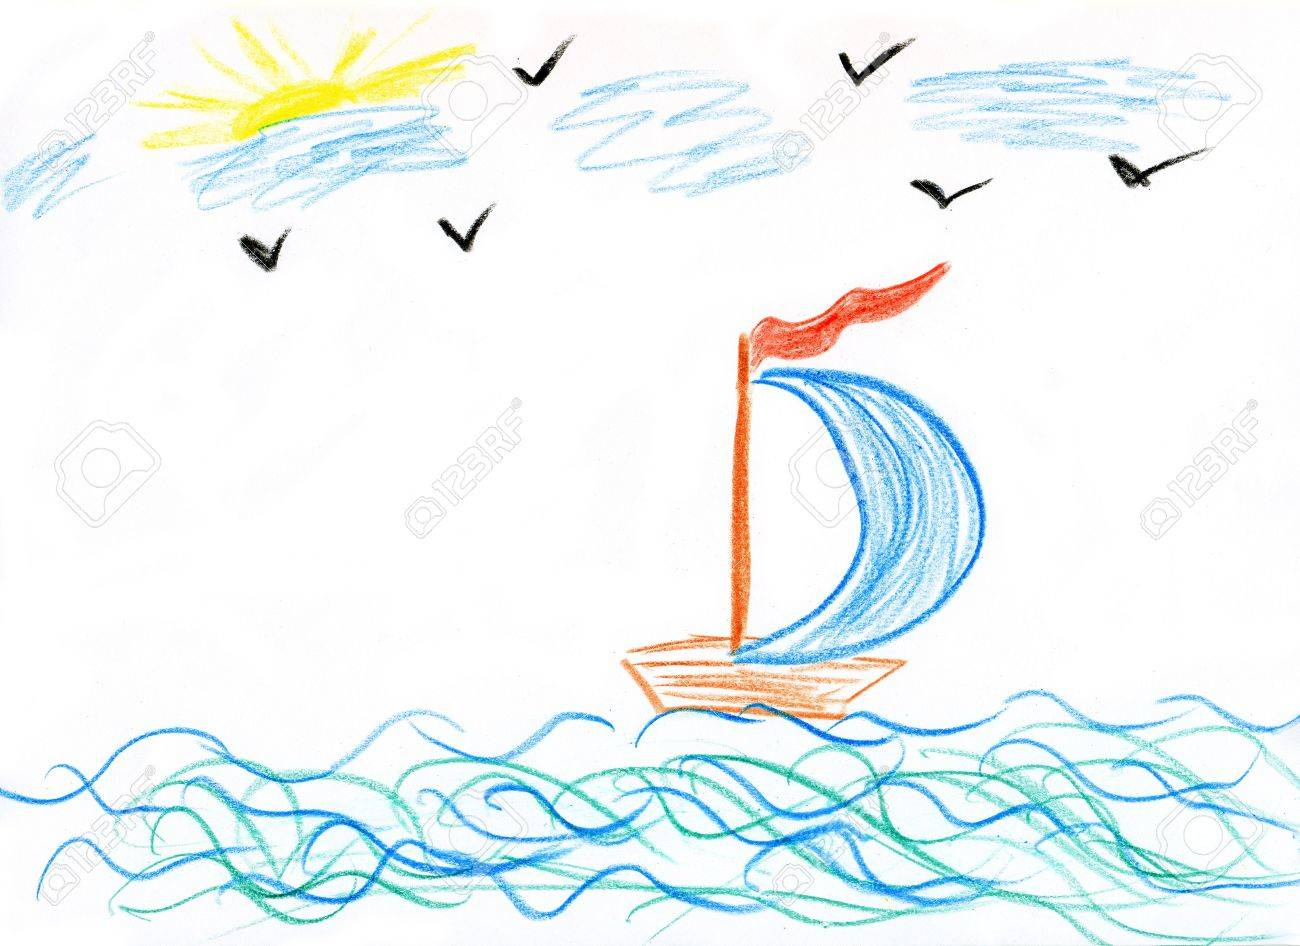 childrens paint ship in sea stock photo 3411657 - Paint Drawing For Kids